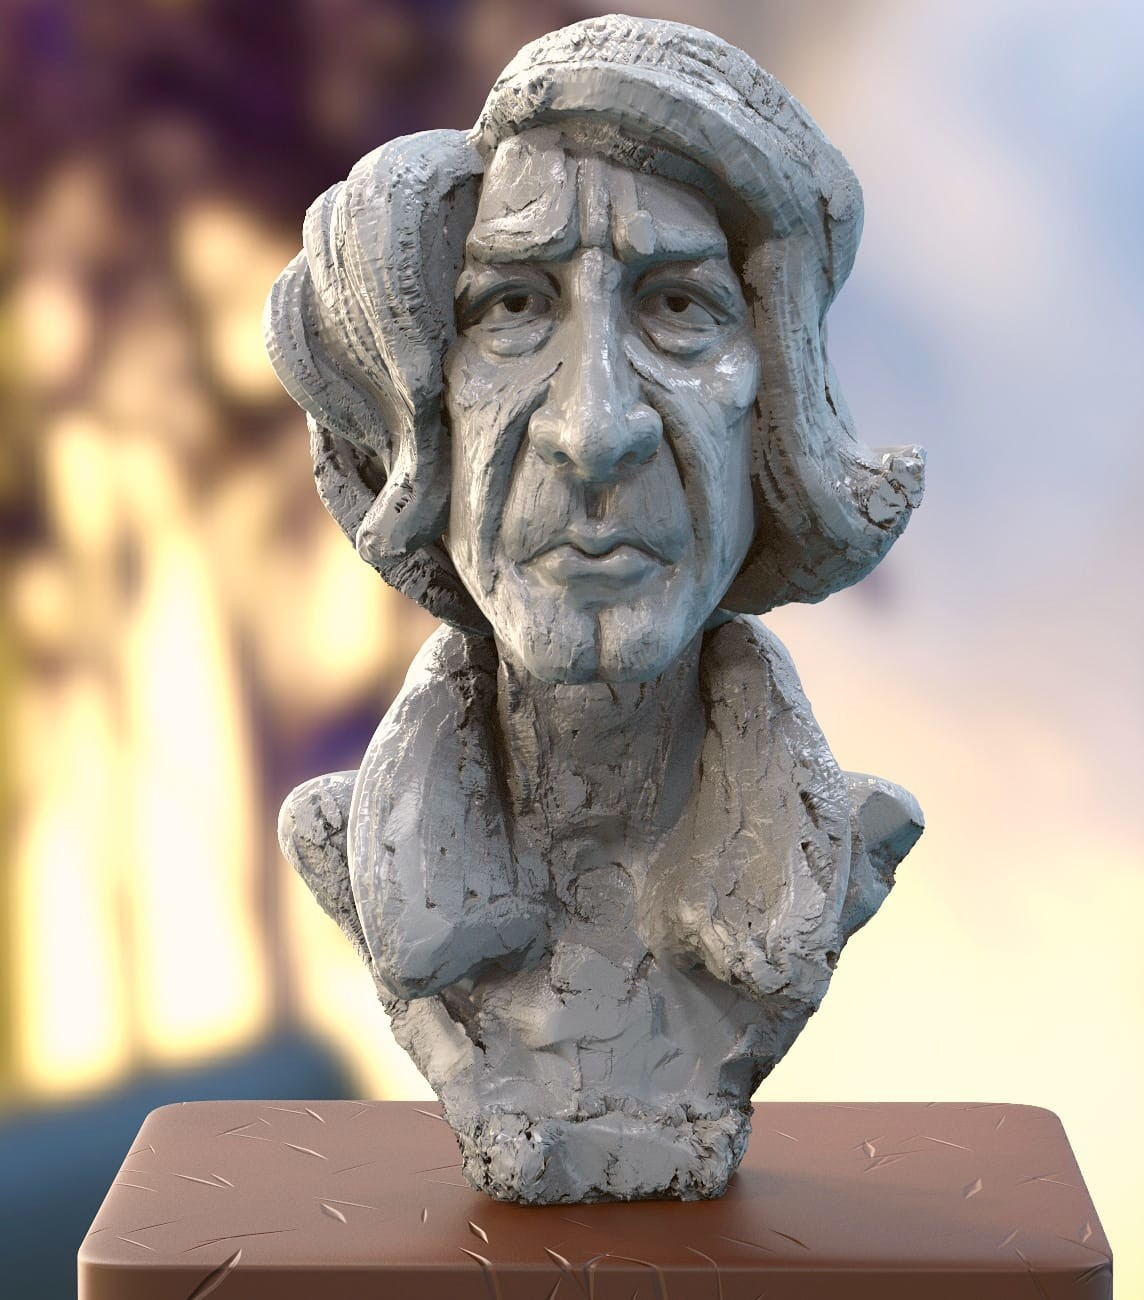 """#doodle #quicksculpt #study   """"Poet"""".....my free time quick sculpt study. Wish to share."""